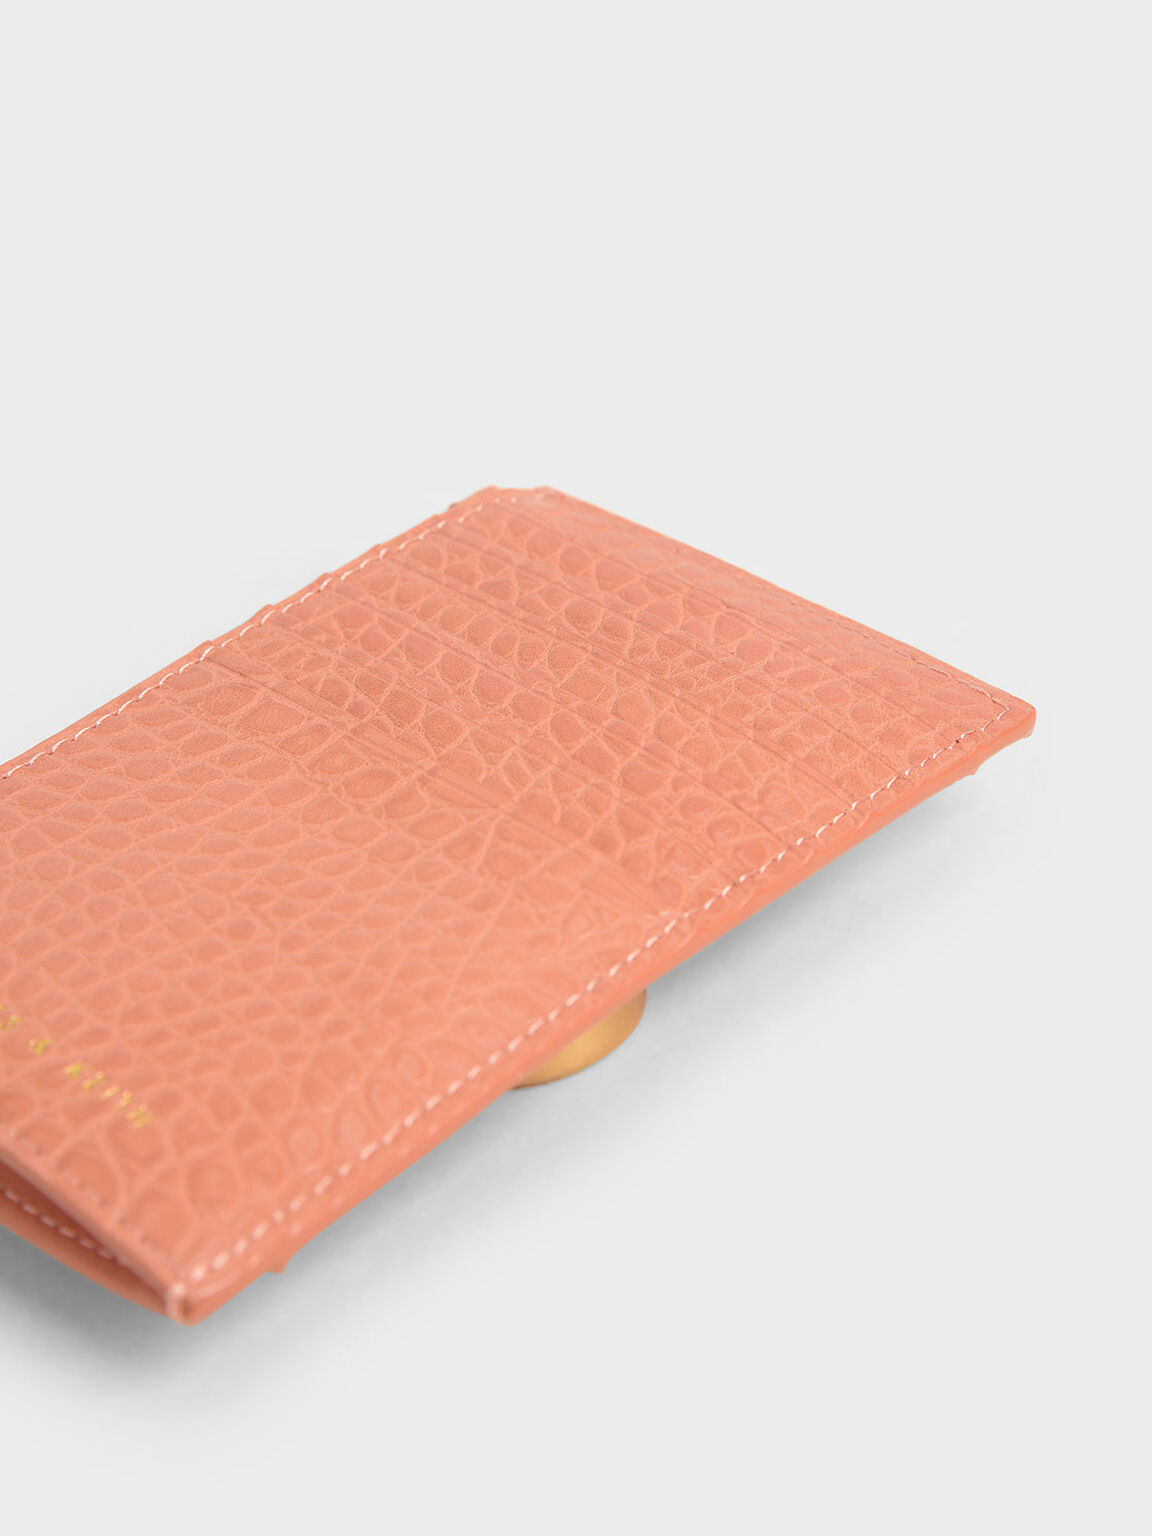 Croc-Effect Stone-Embellished Card Holder, Peach, hi-res